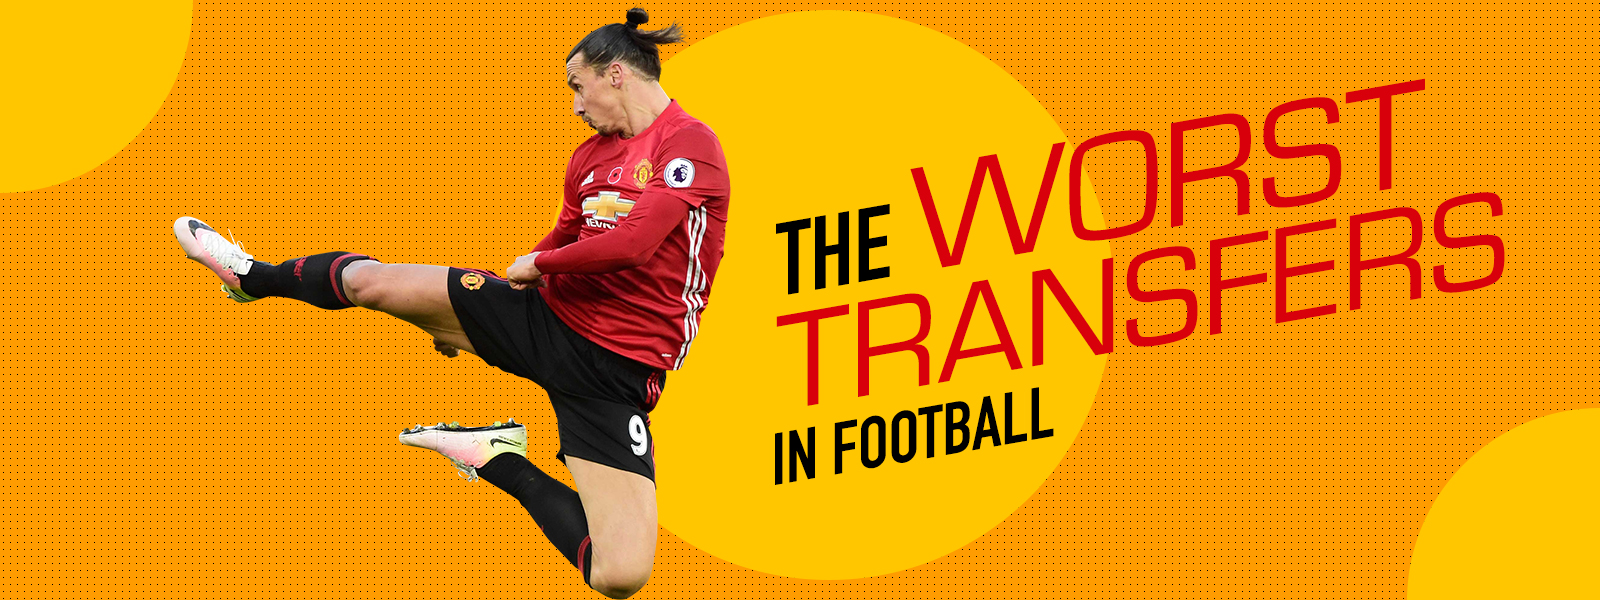 The Worst Transfers In Football